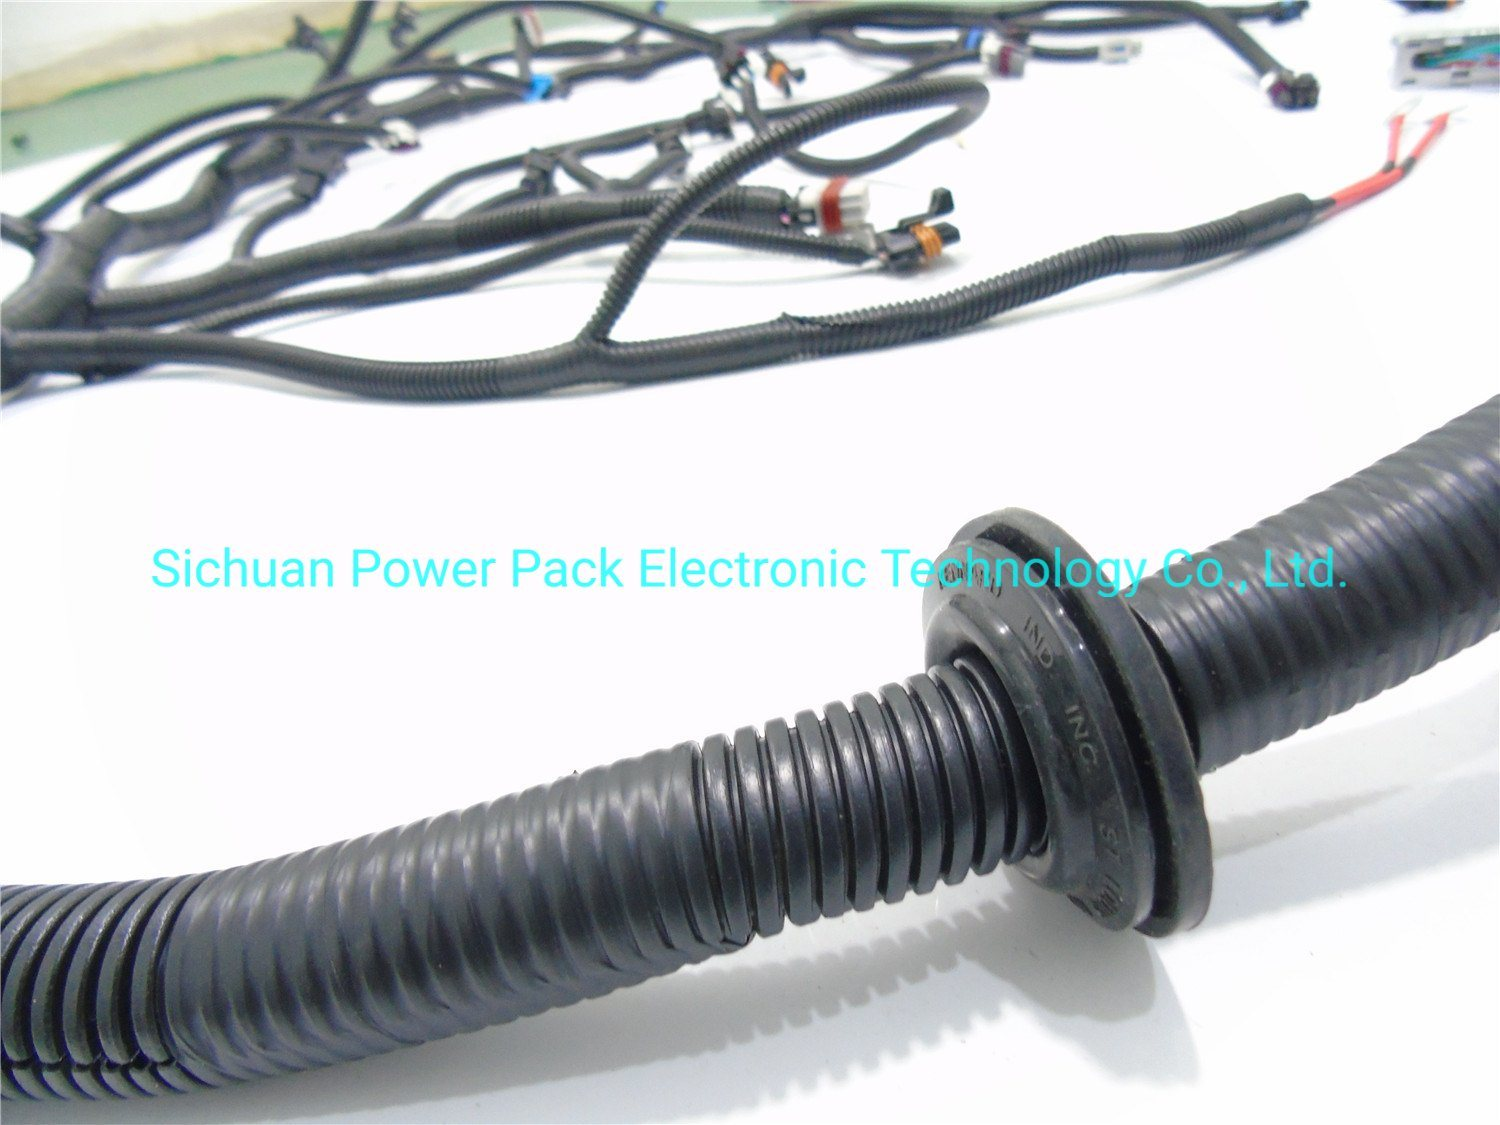 [DIAGRAM_5LK]  China 99 - 06 Vortec W/ T56 Standalone Wiring Harness (DBC) with Ls1 Intake  Photos & Pictures - Made-in-china.com | T56 Wiring Harness |  | Sichuan Power Pack Electronic Technology Co., Ltd.